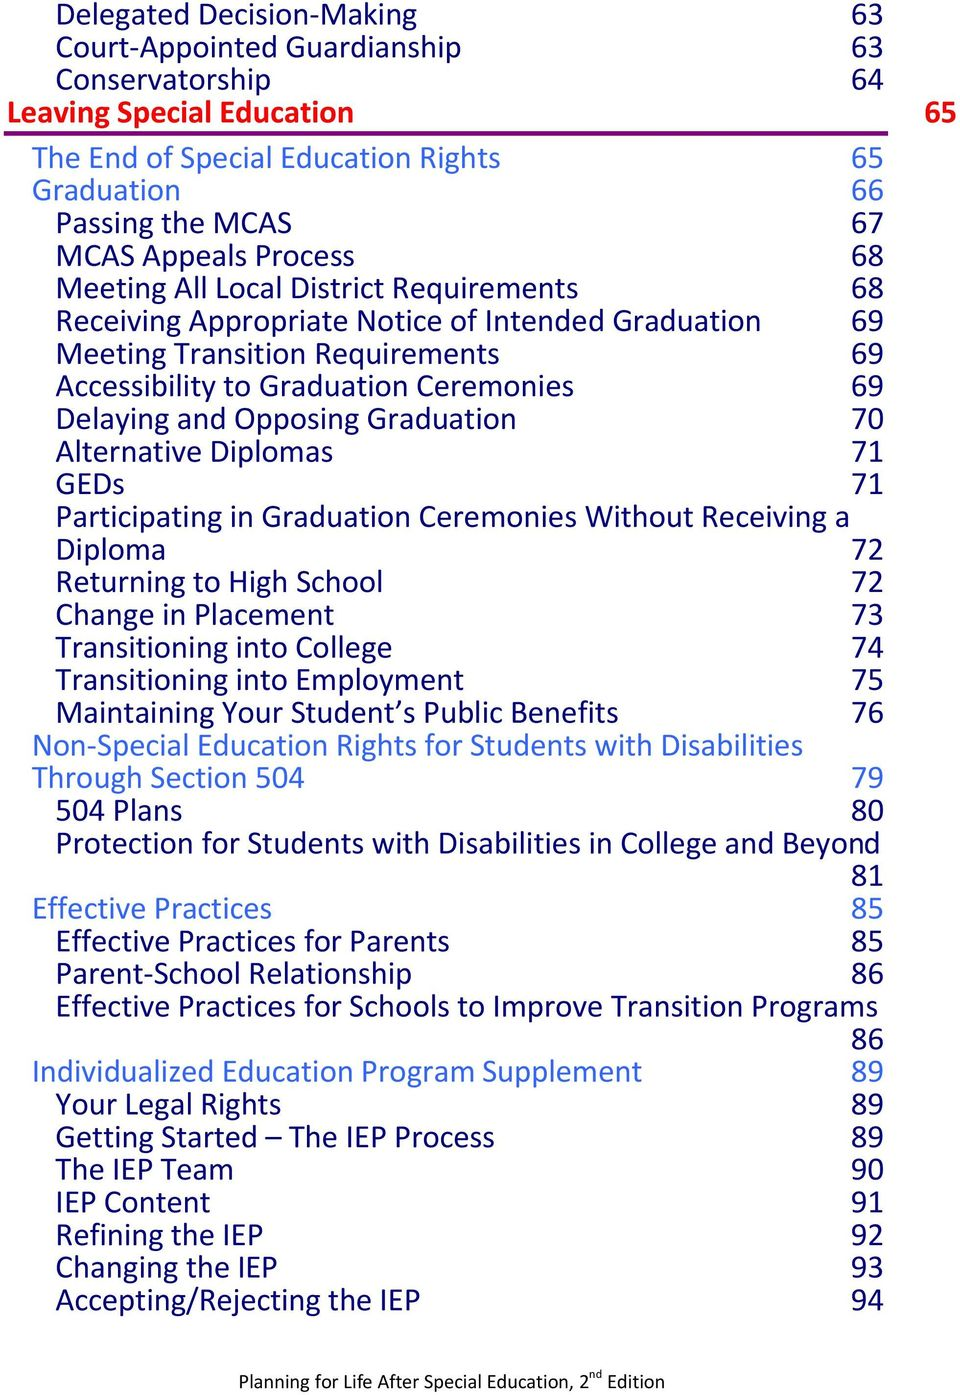 Opposing Graduation 70 Alternative Diplomas GEDs 71 71 Participating in Graduation Ceremonies Without Receiving a Diploma Returning to High School 72 72 Change in Placement 73 Transitioning into